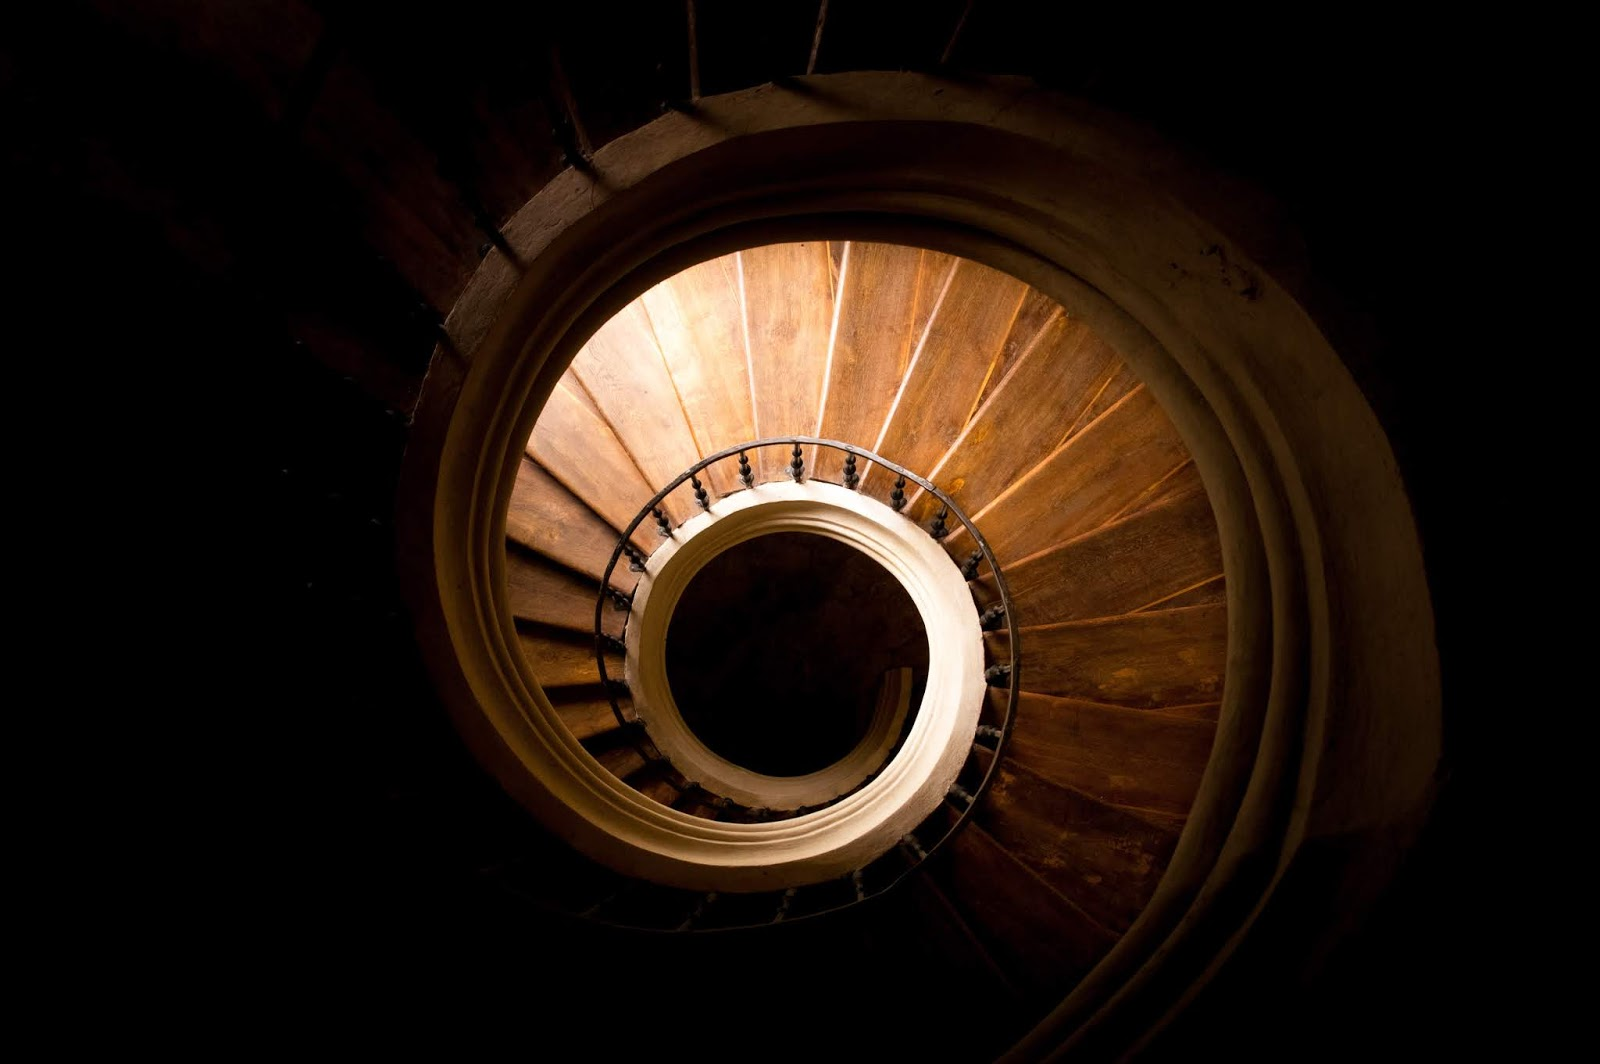 A gothic style staircase that is slowly winding down.